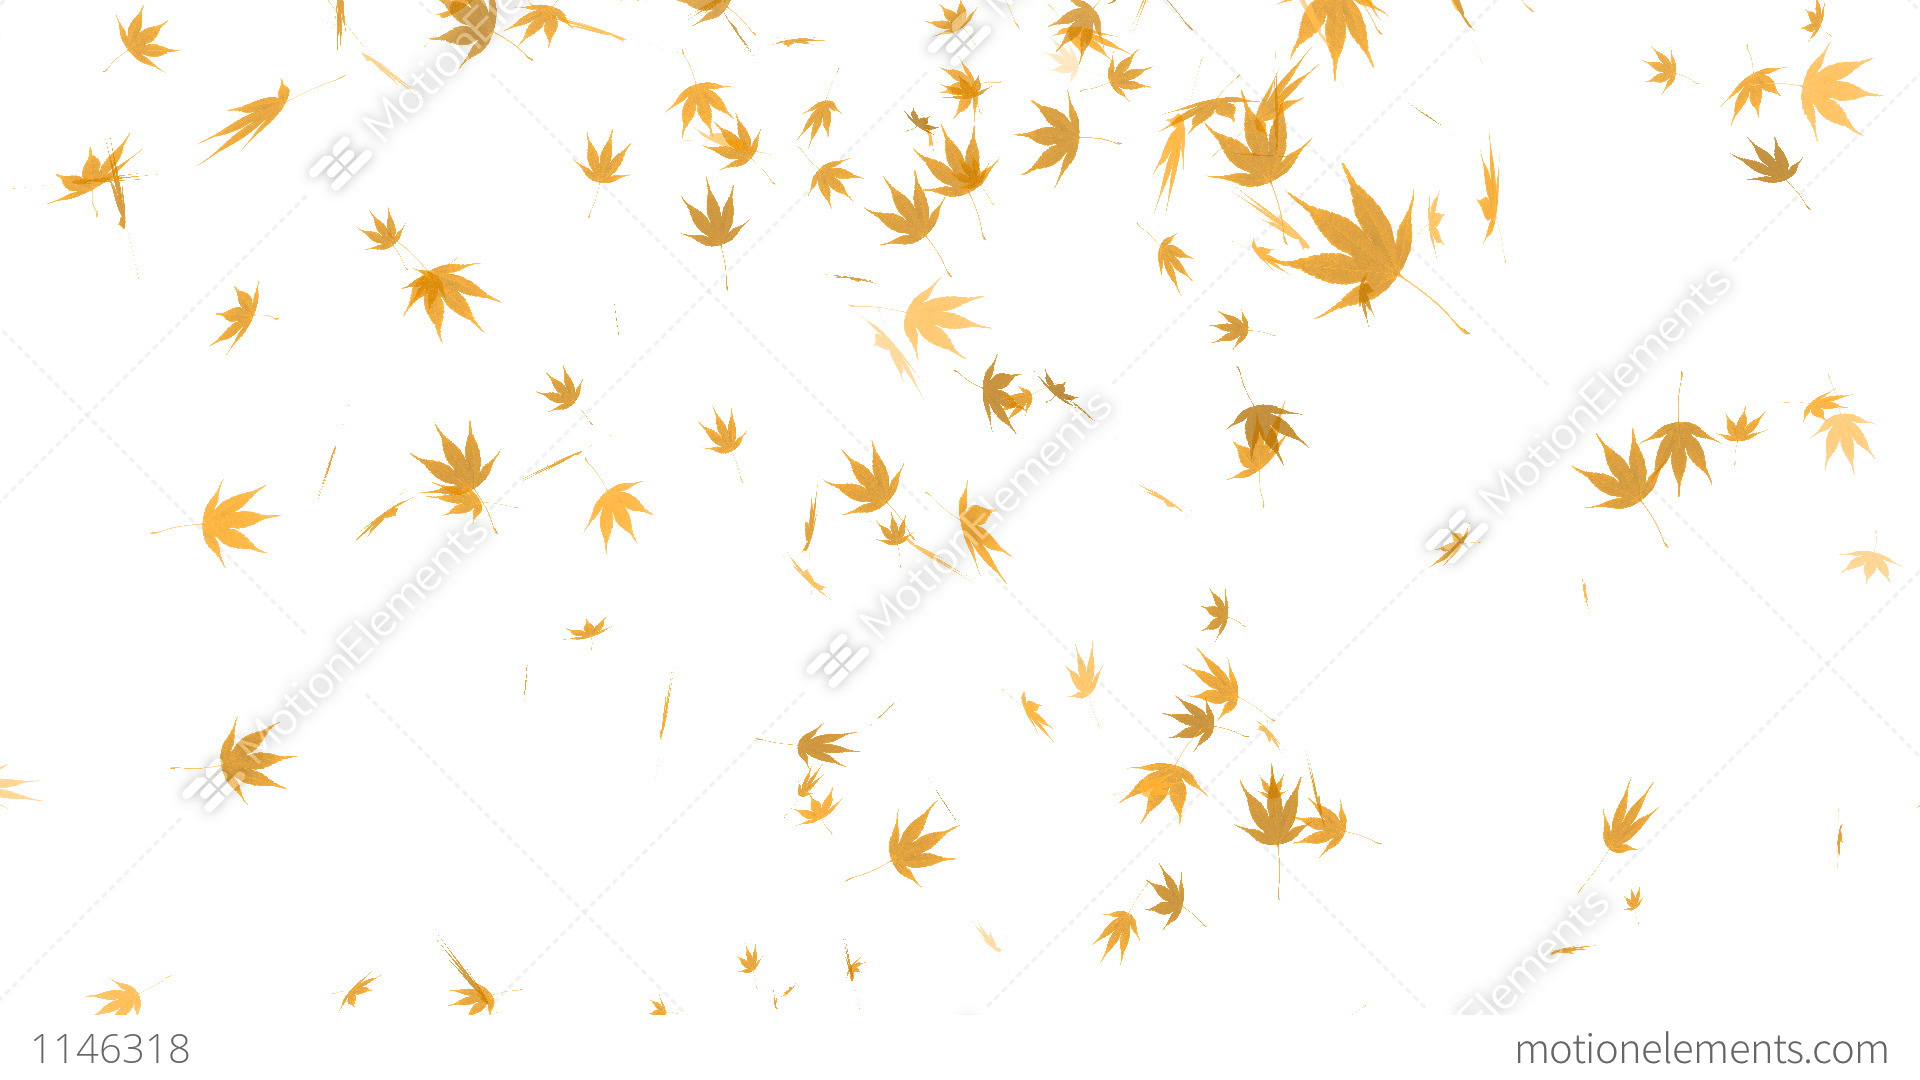 HD Loopable Falling Autumn Leaves Animation Stock ...